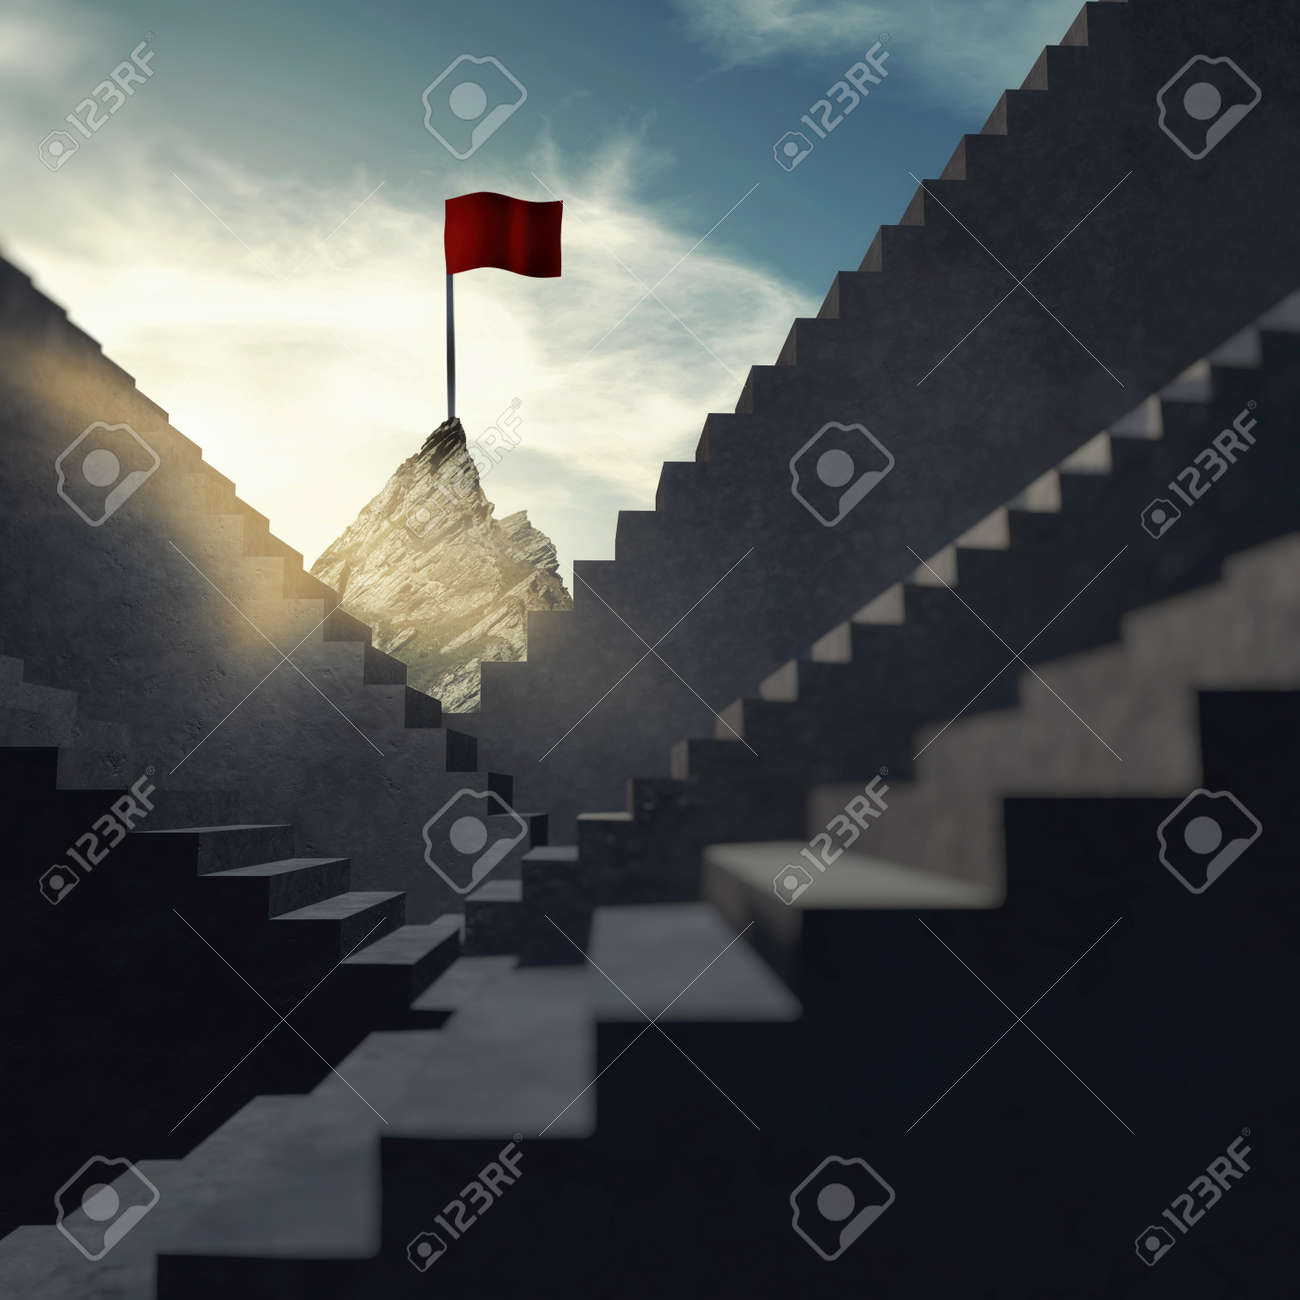 Stairways leading to a mountain peak with a red flag on top . The concept of achieving dreams. - 143100465